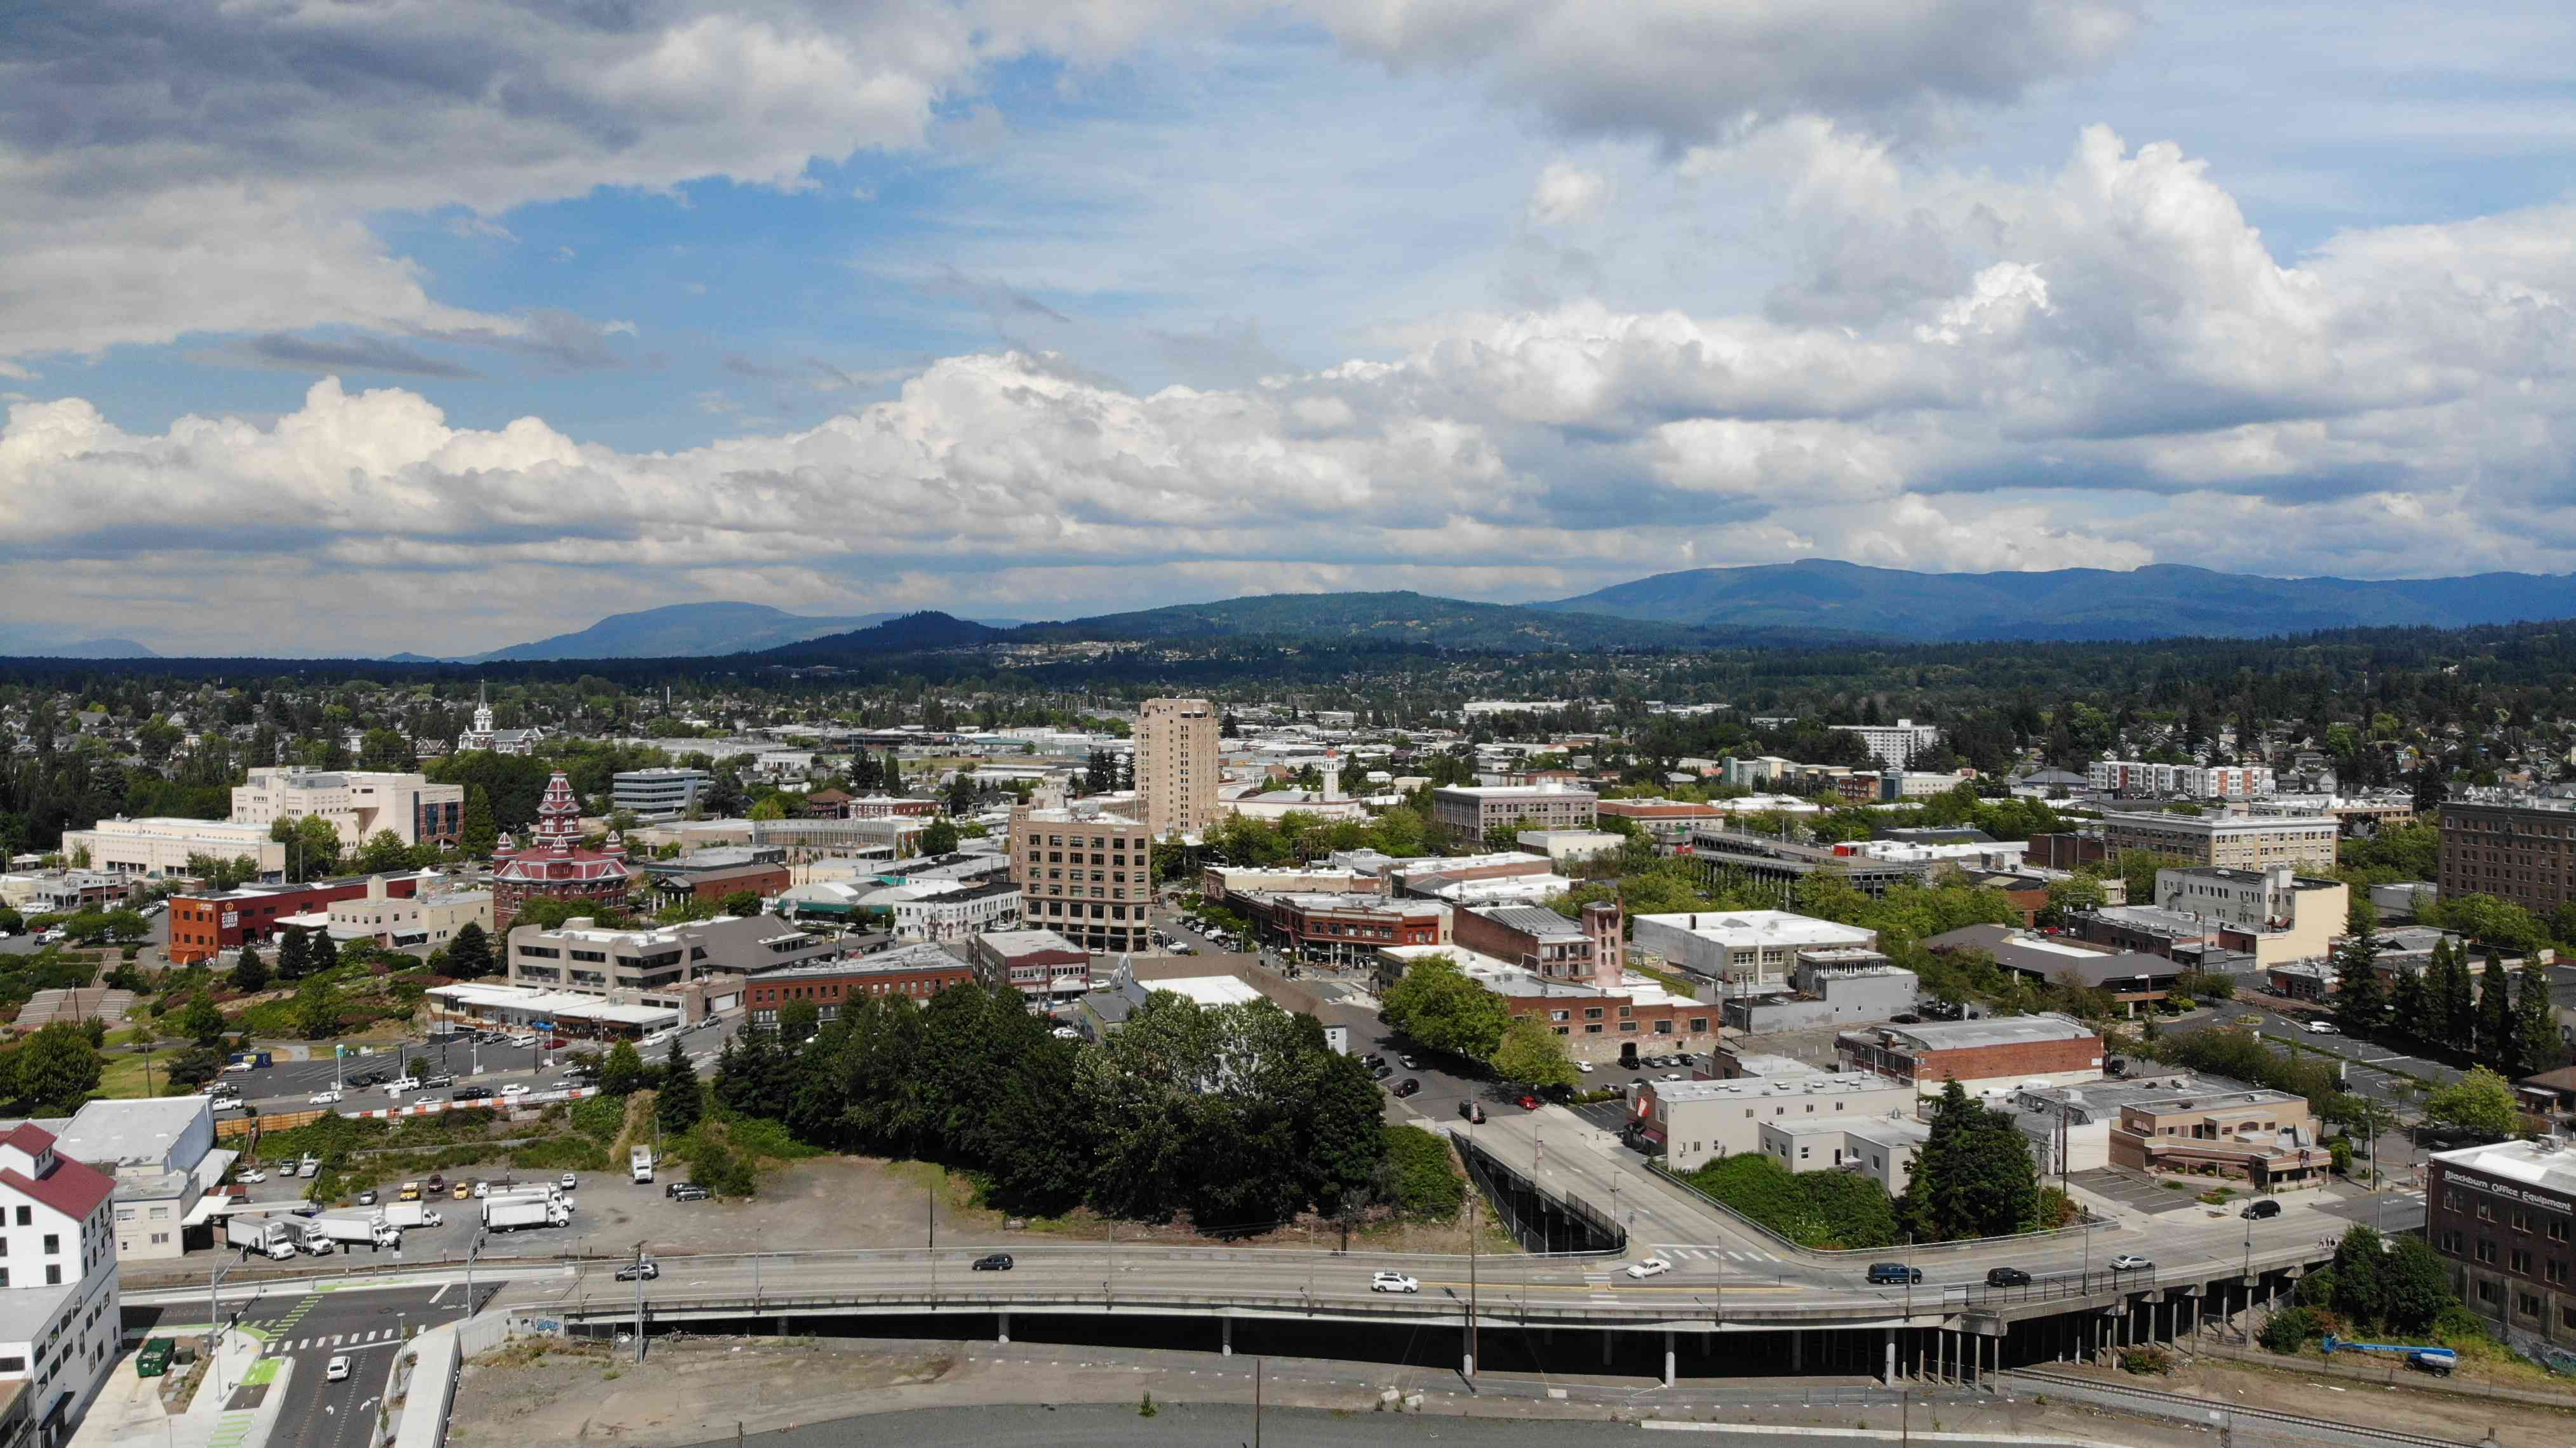 Downtown Bellingham - Drone View